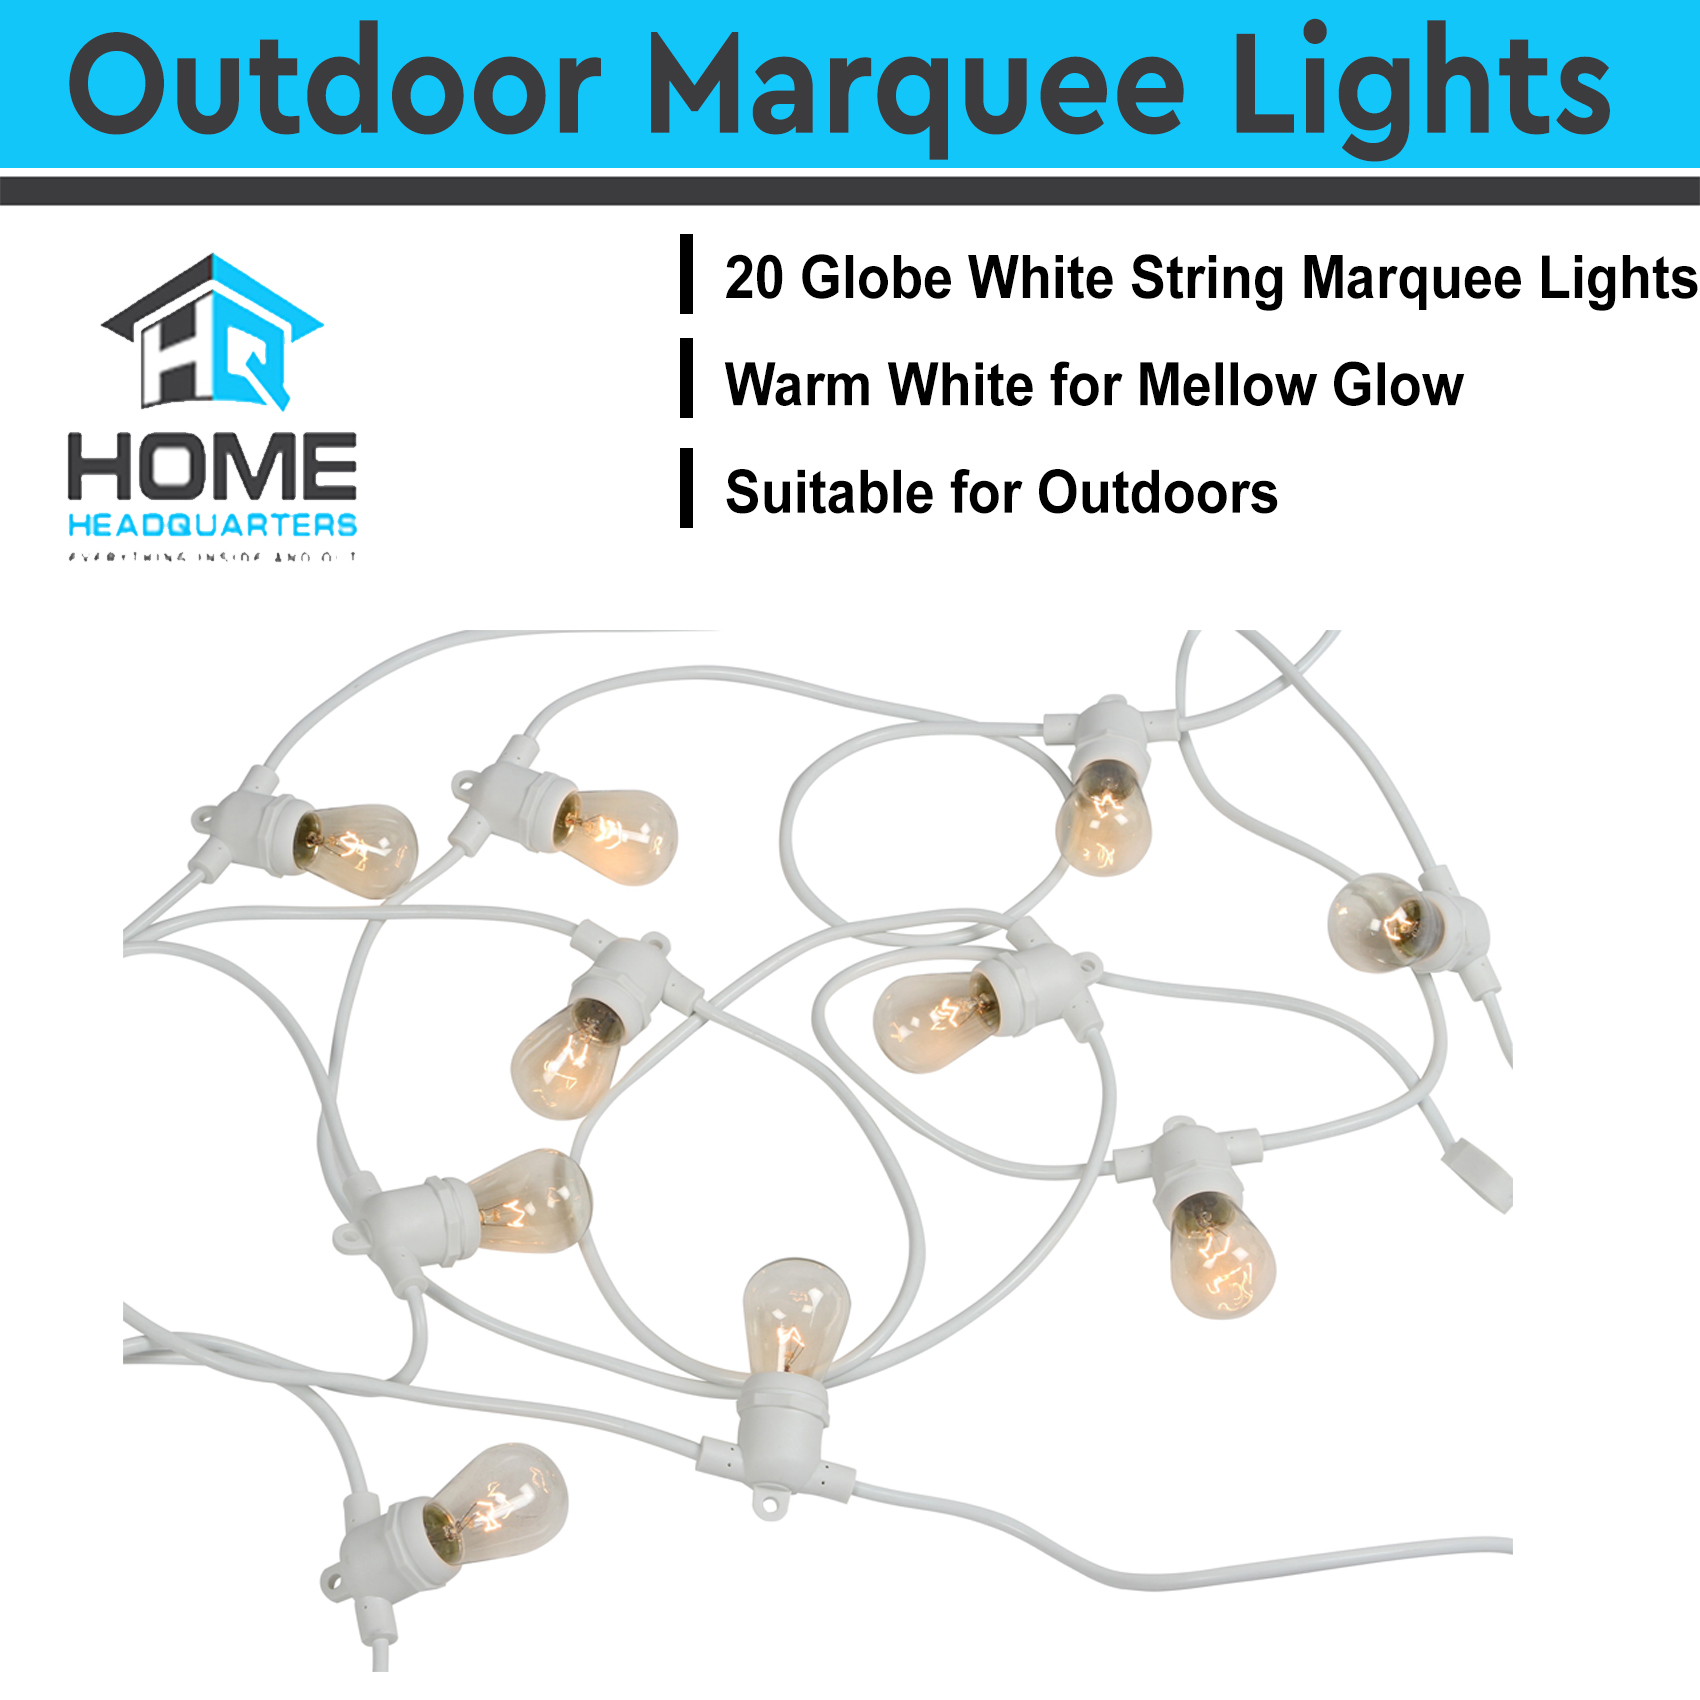 String Lights For Marquee : 20m String Lights Festoon Wedding Party Fairy Outdoor Marquee Vintage Retro Whit eBay